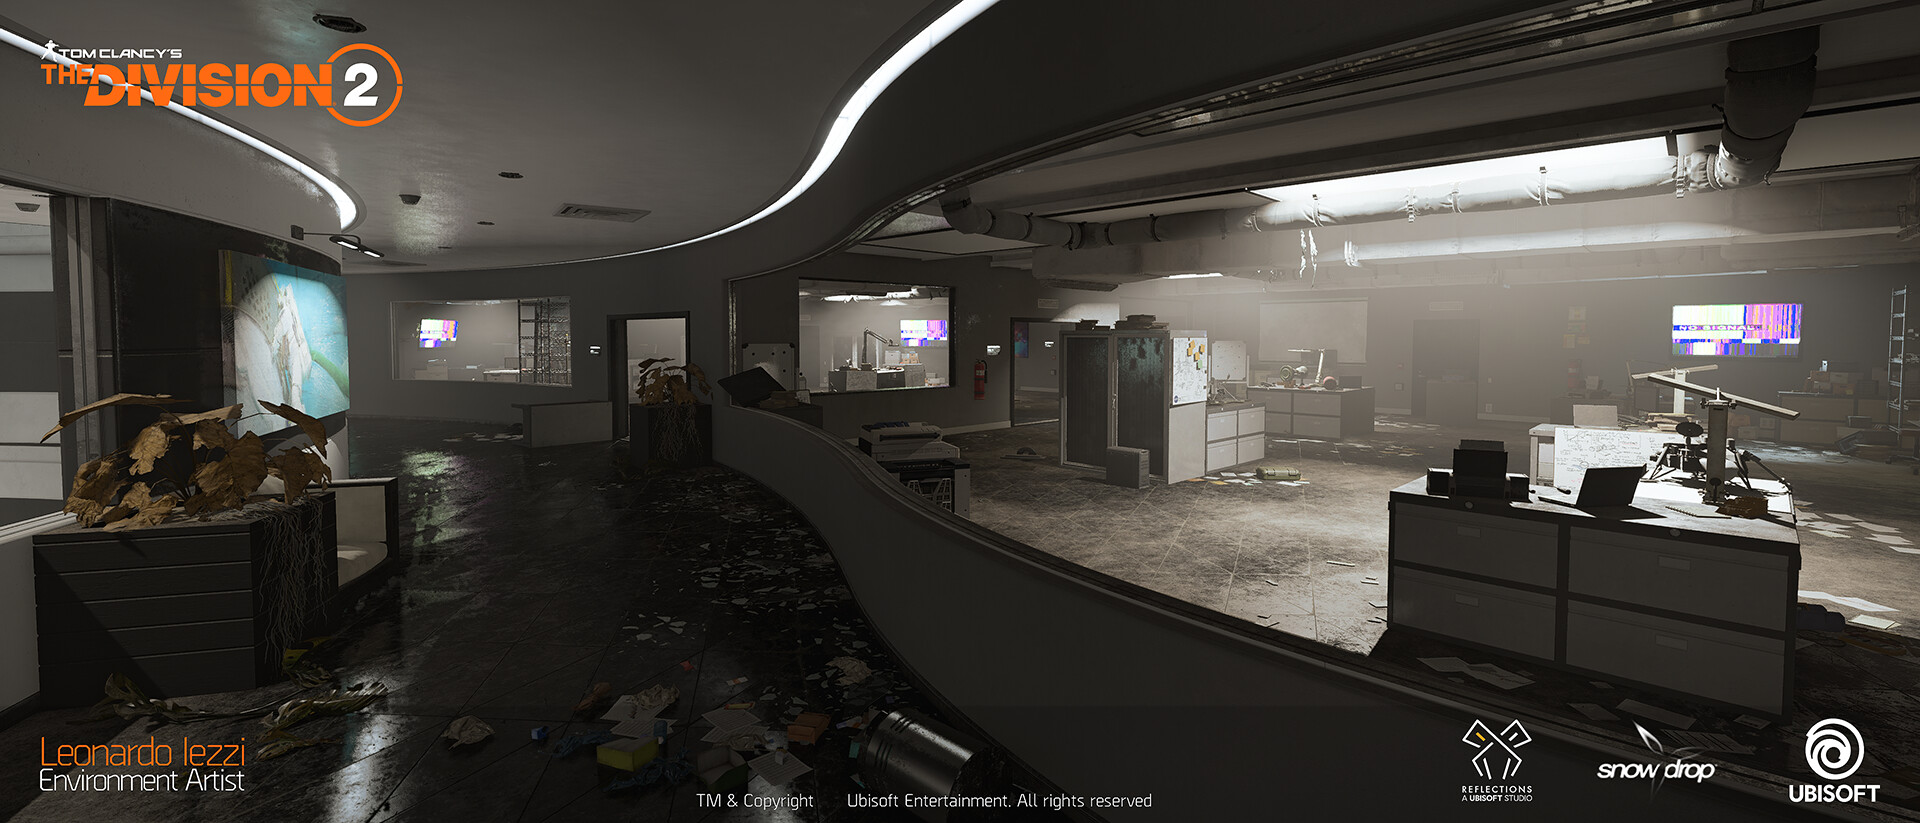 Leonardo iezzi leonardo iezzi the division 2 environment art 02 atrium 034 wide